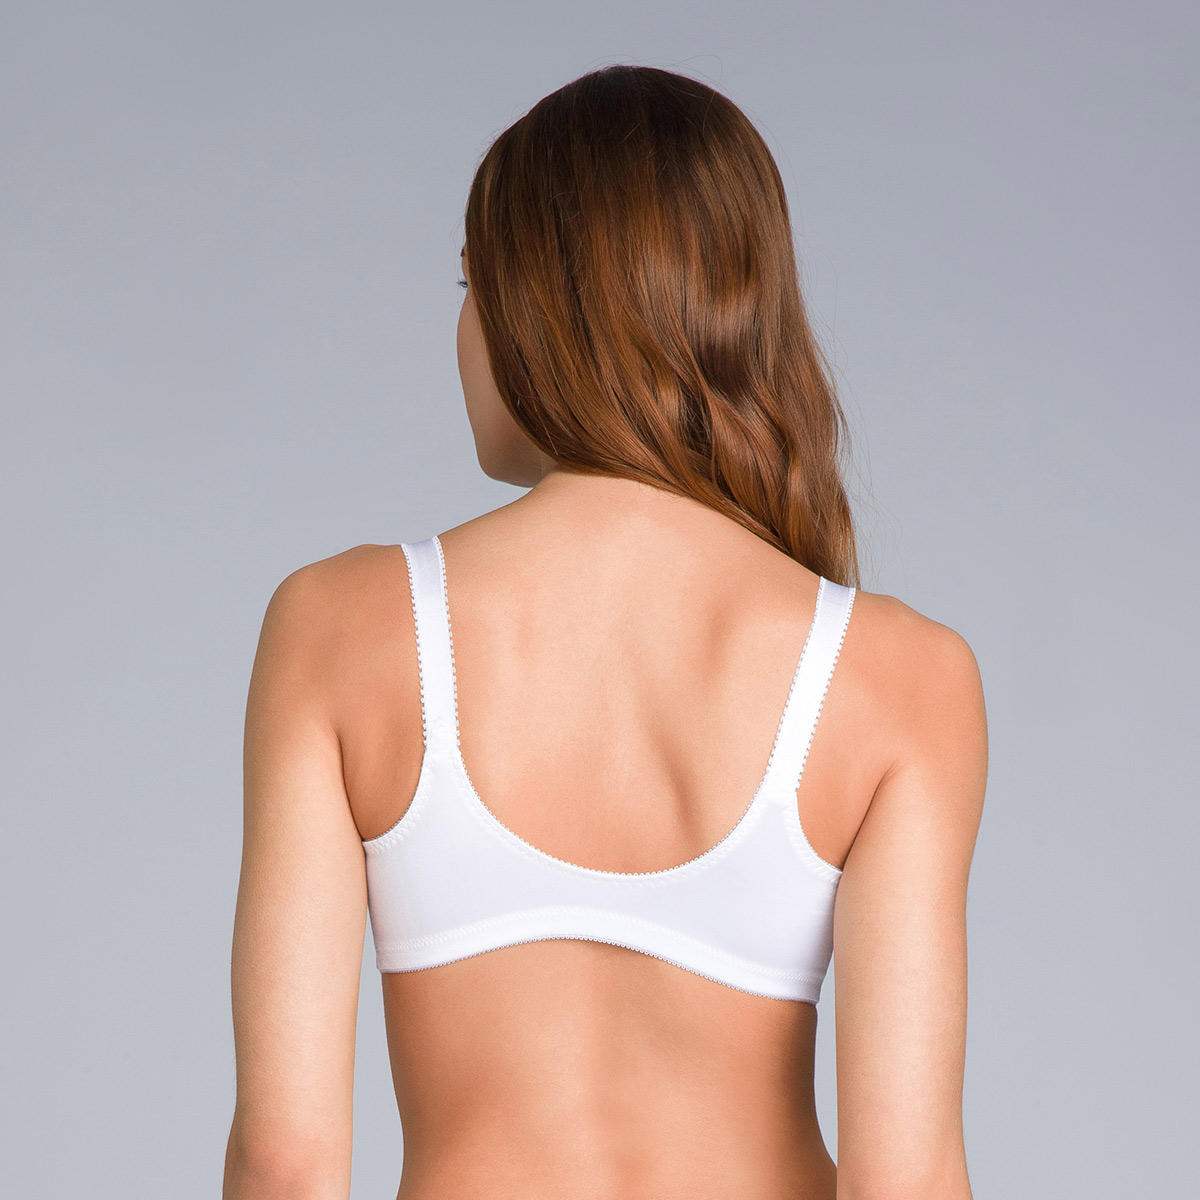 Non-Wired Full Cup Bra with Front Closure in White - Double Support - PLAYTEX